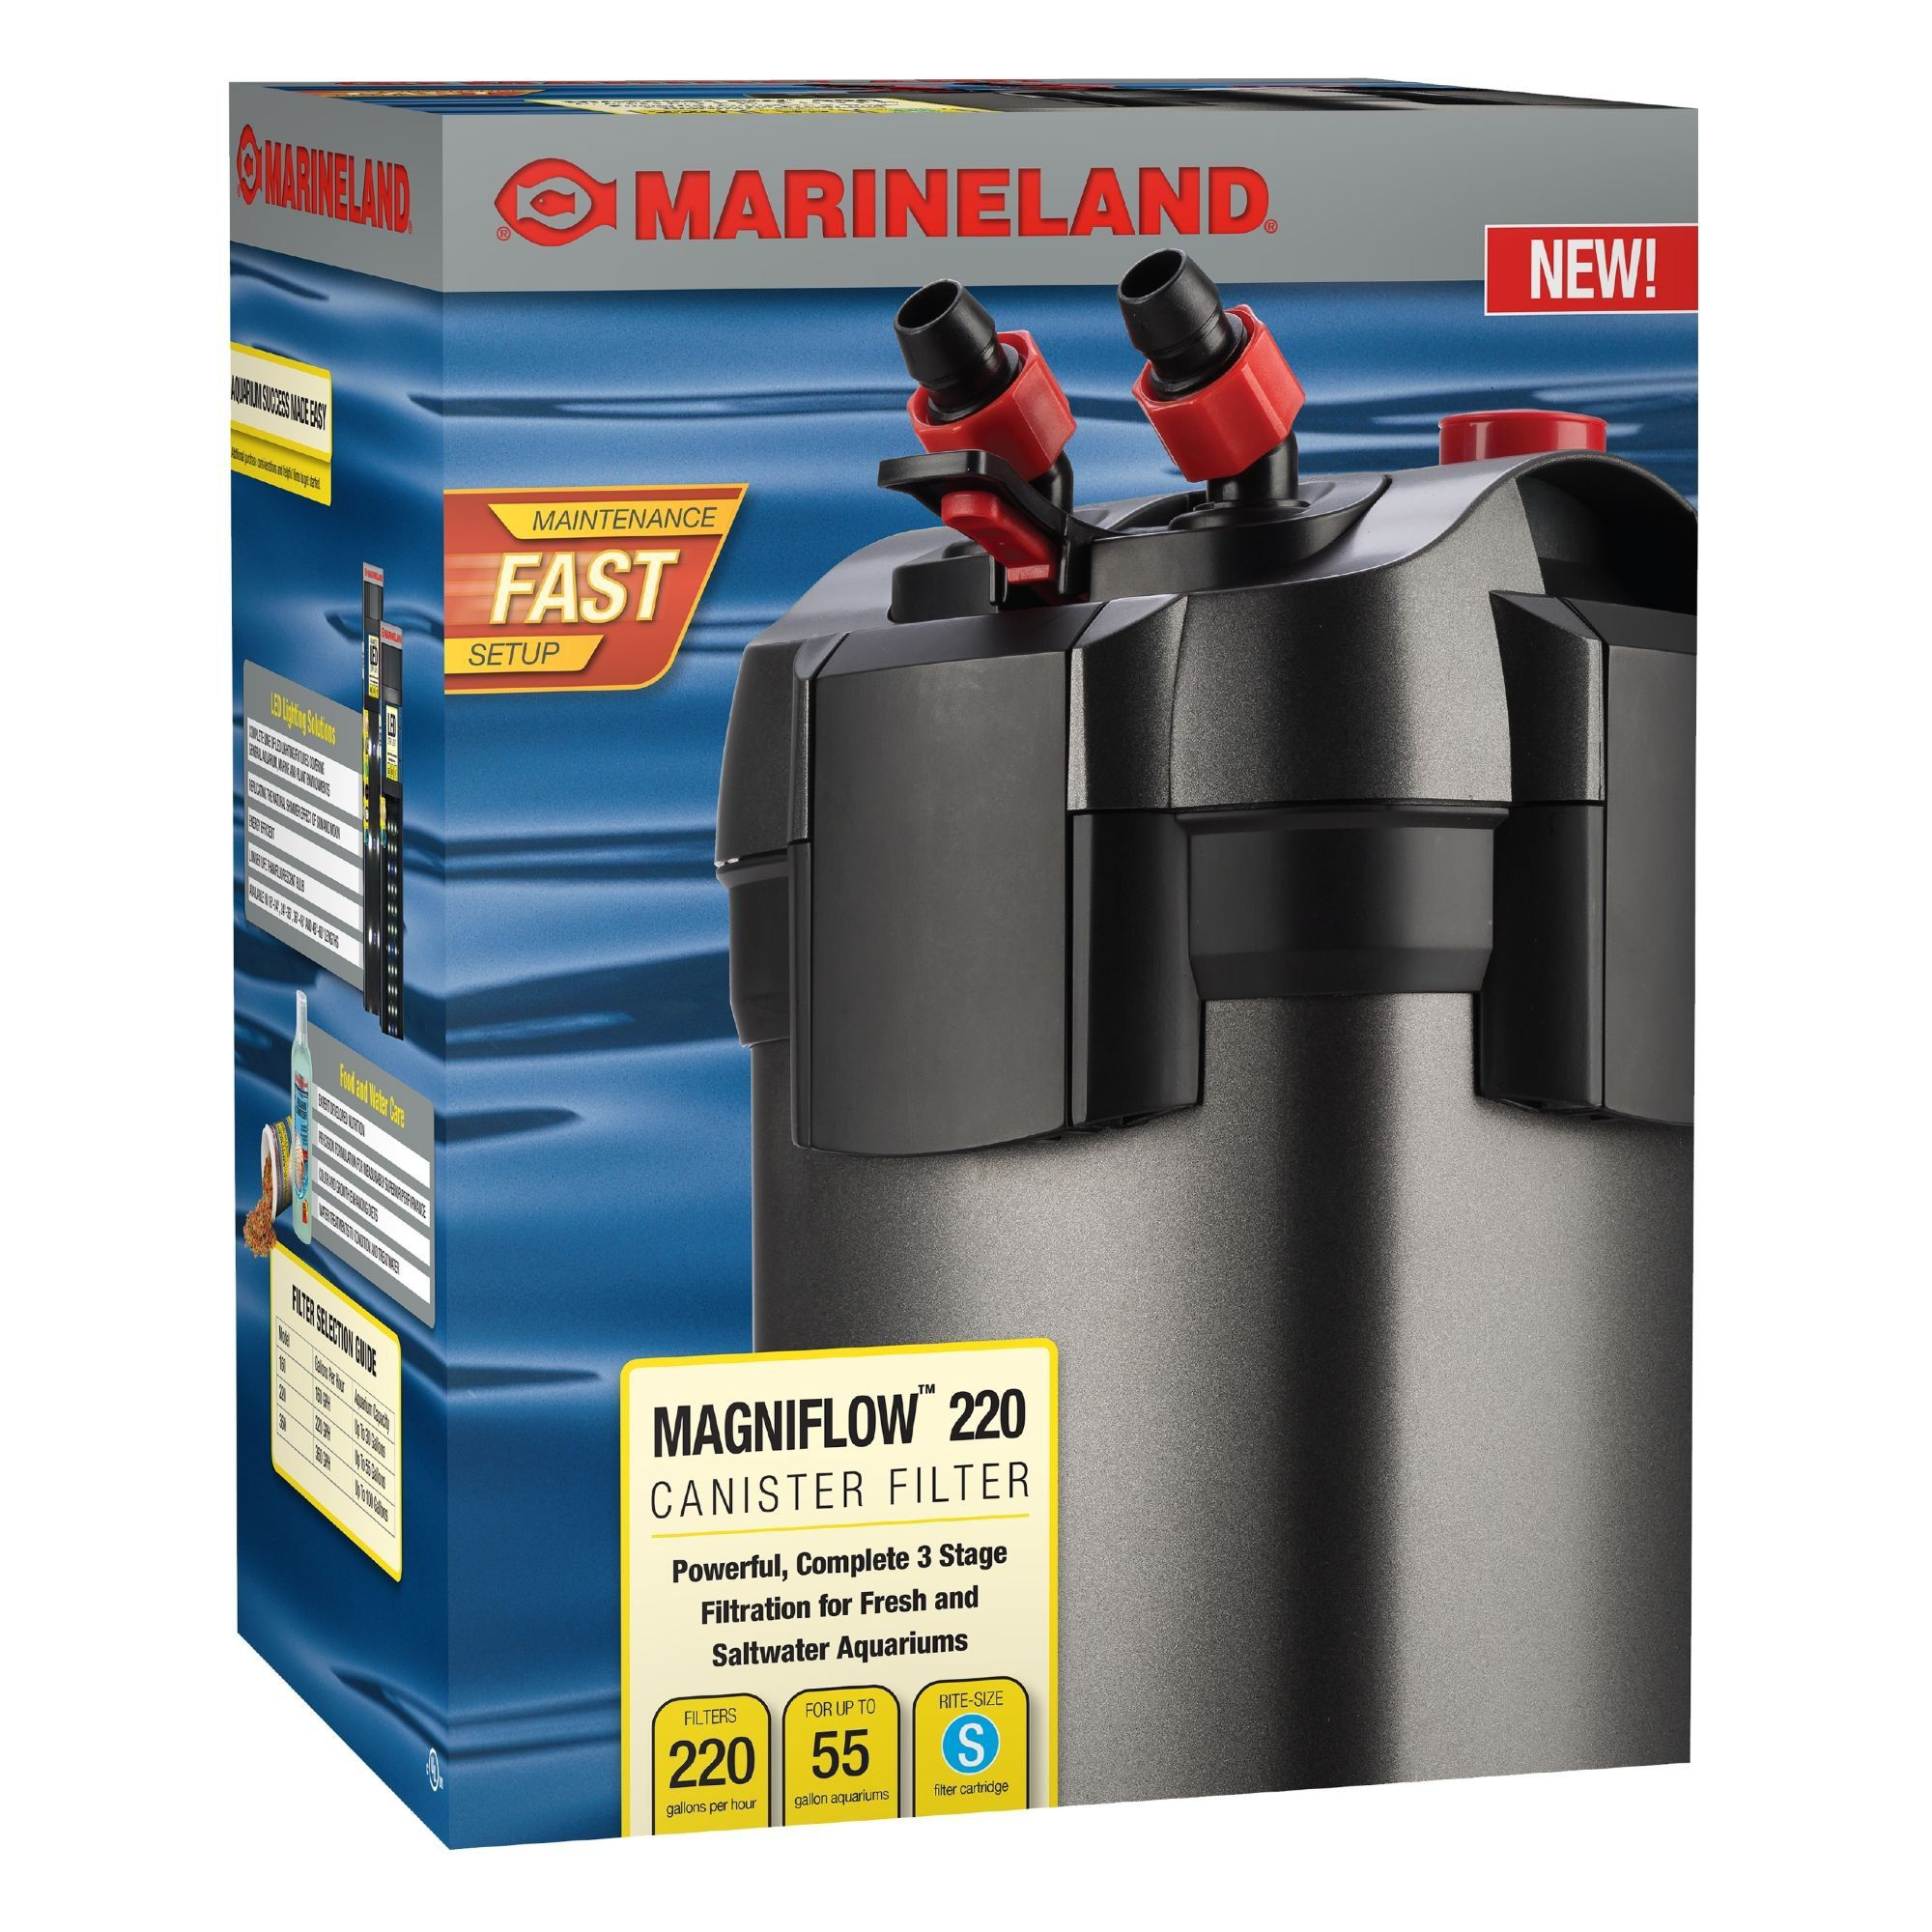 Marineland Magniflow 220 gph Canister Filter Filters